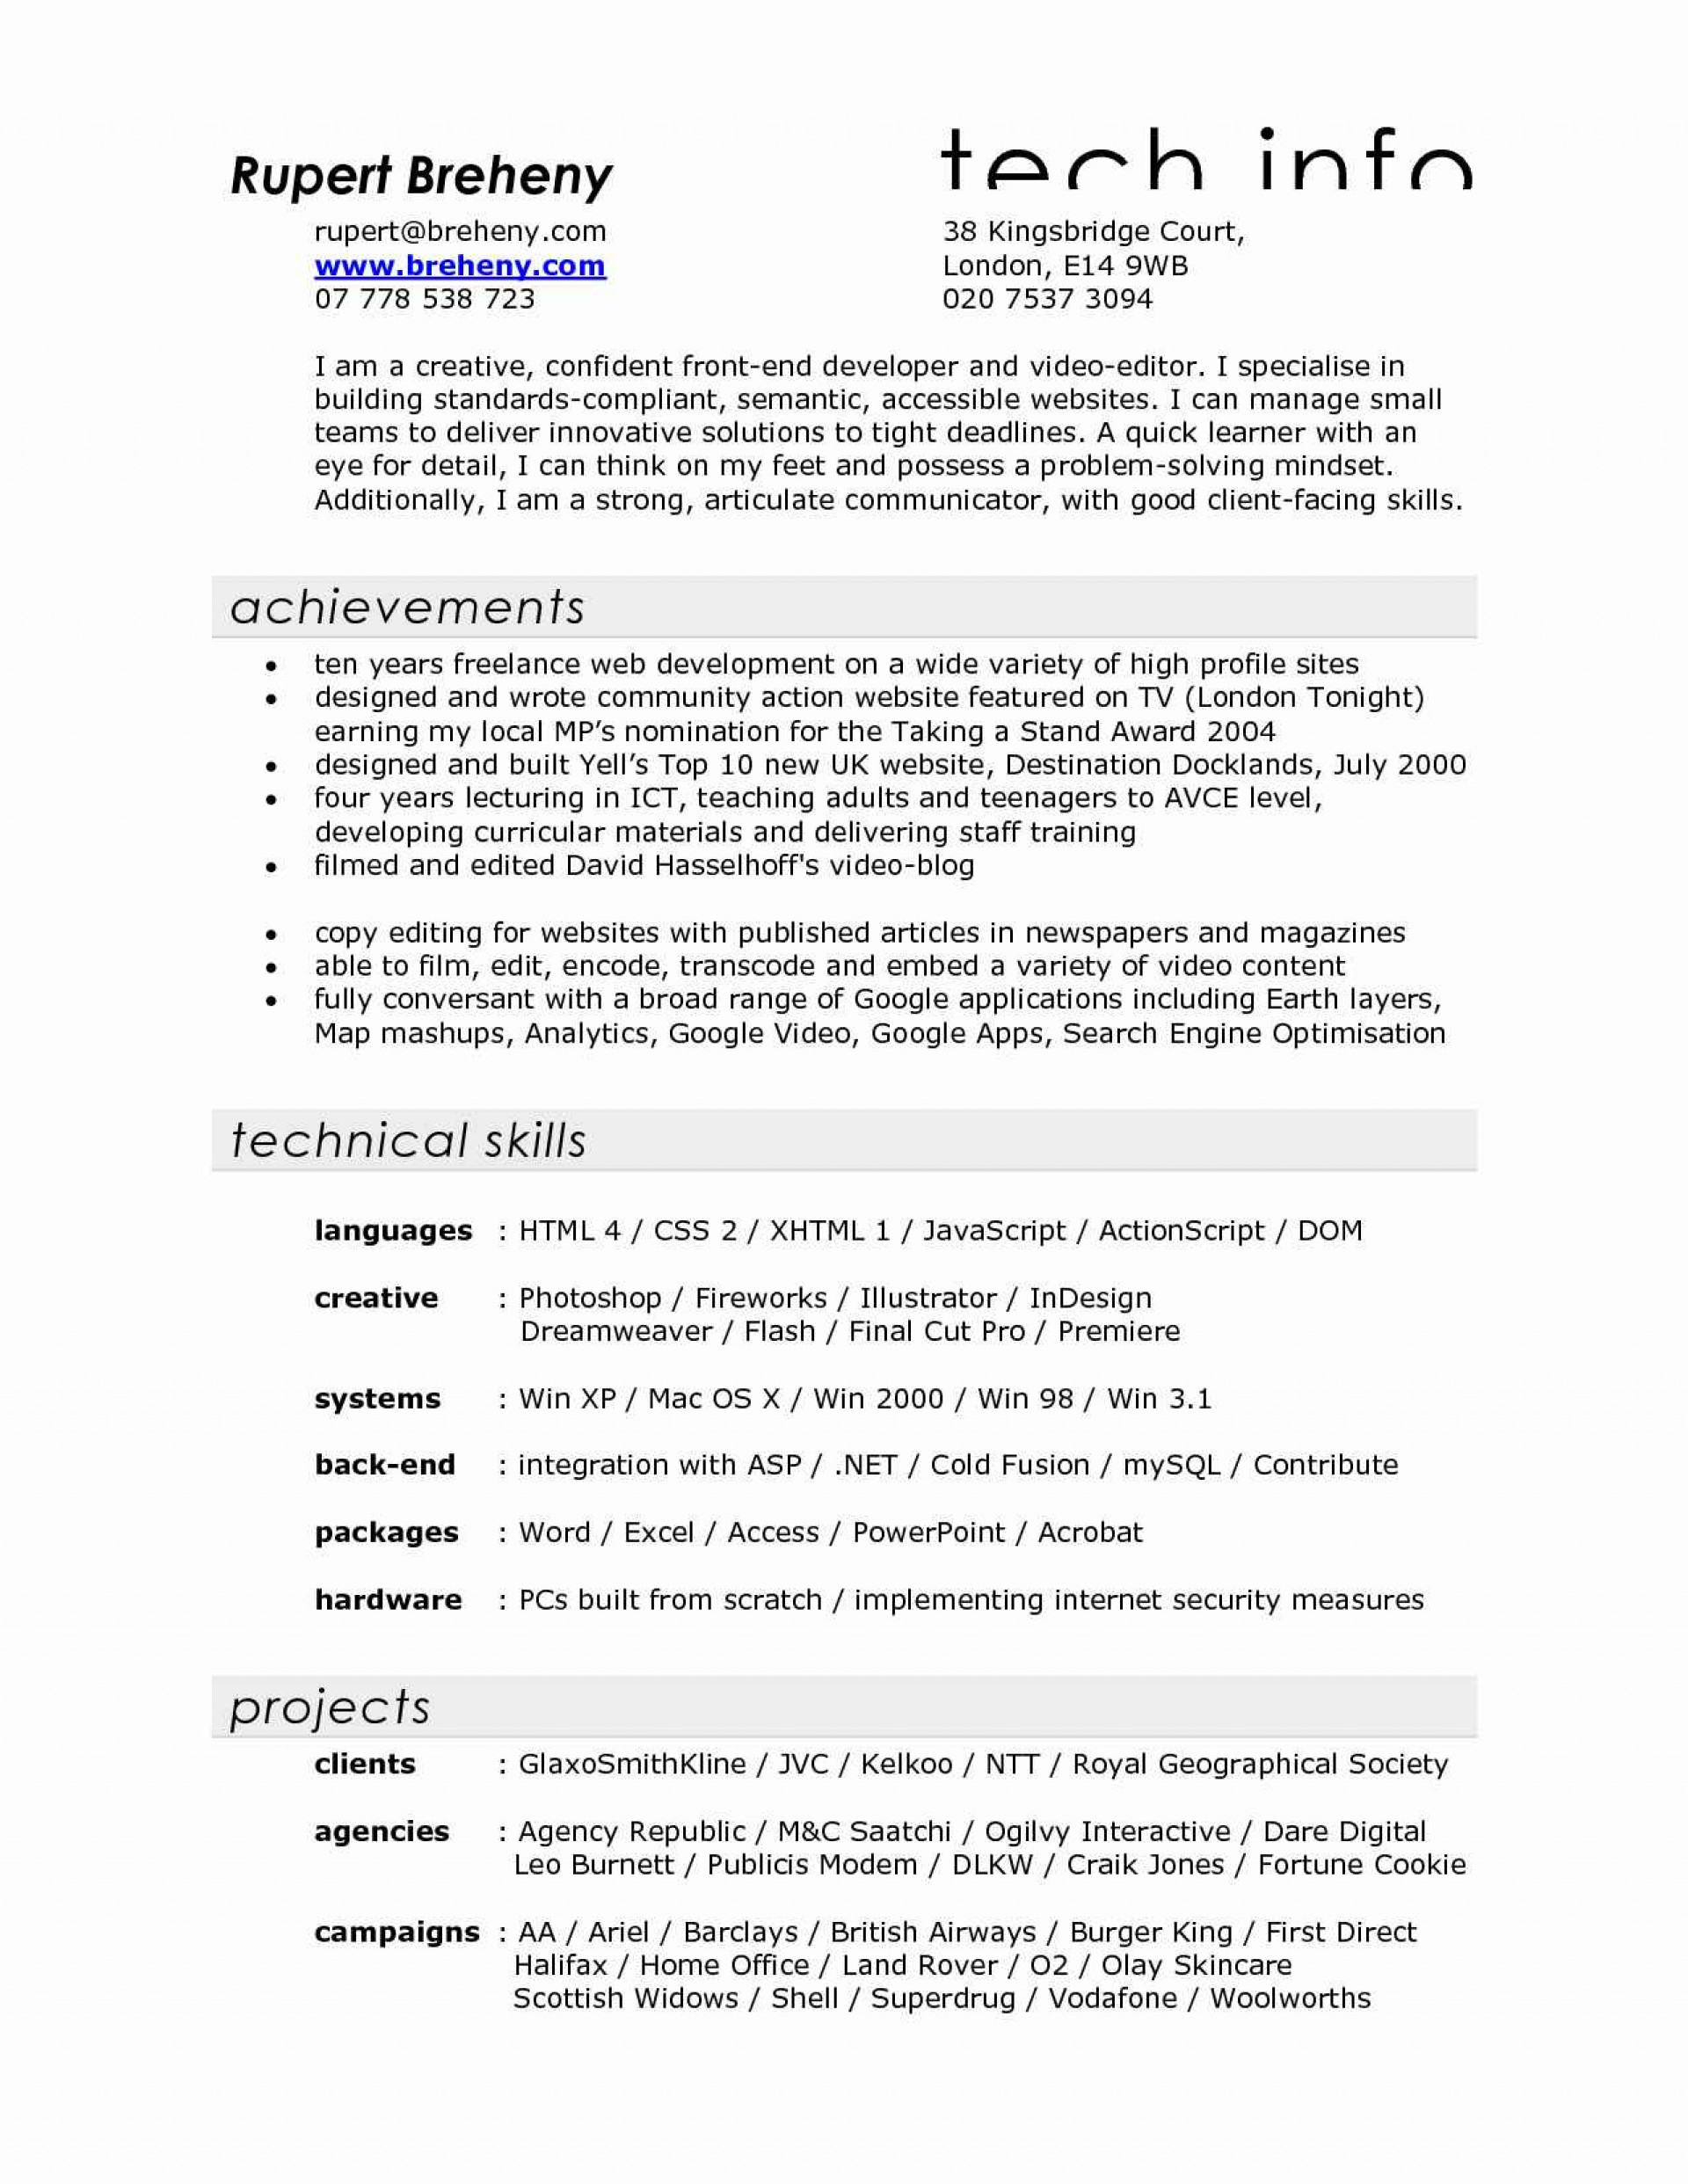 011 Film Director Resume Template Inspirational Gre Awa Analytical Essays For Writing Issue Essay Sample S Breathtaking About Life And Struggles Youth 1920